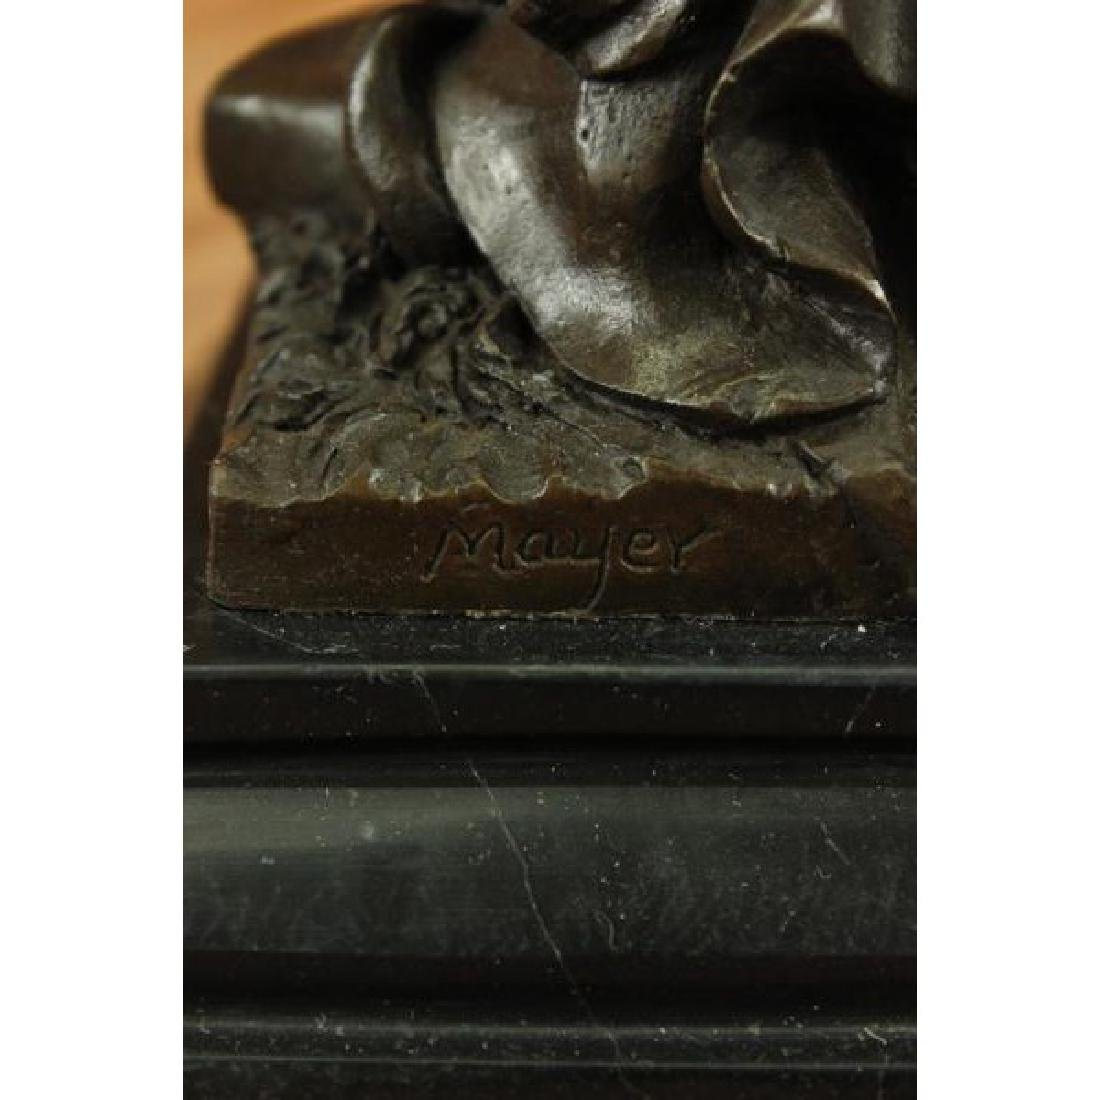 Blind Justice - Scale of Justice Bronze Sculpture - 6